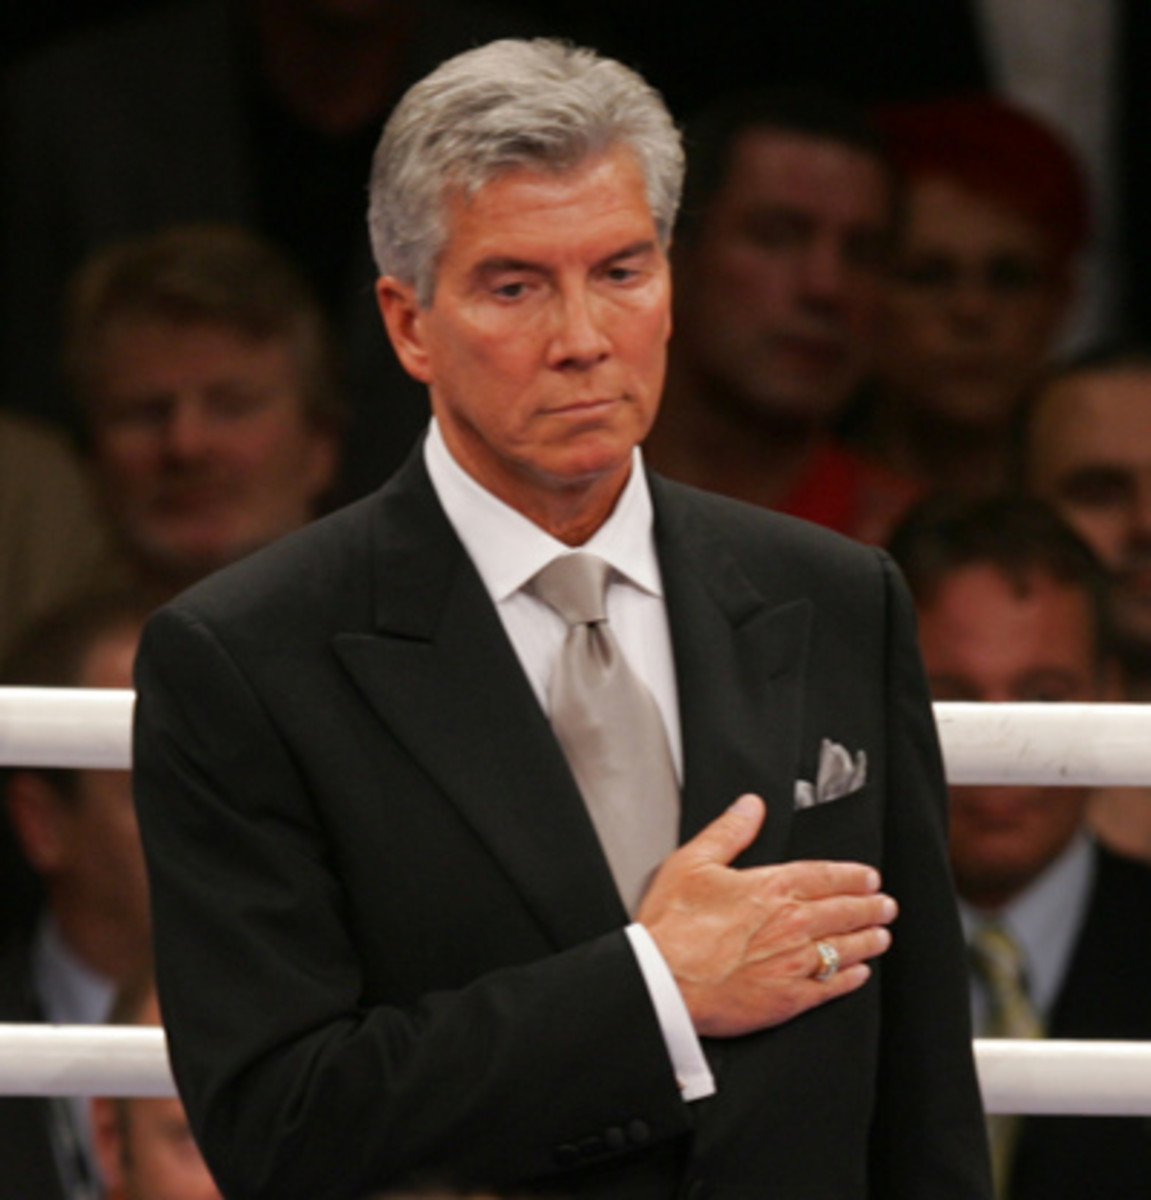 MICHAEL BUFFER OF VINCE MCMAHON'S WORLD WRESTLING ENTERTAINMENT (WWE).